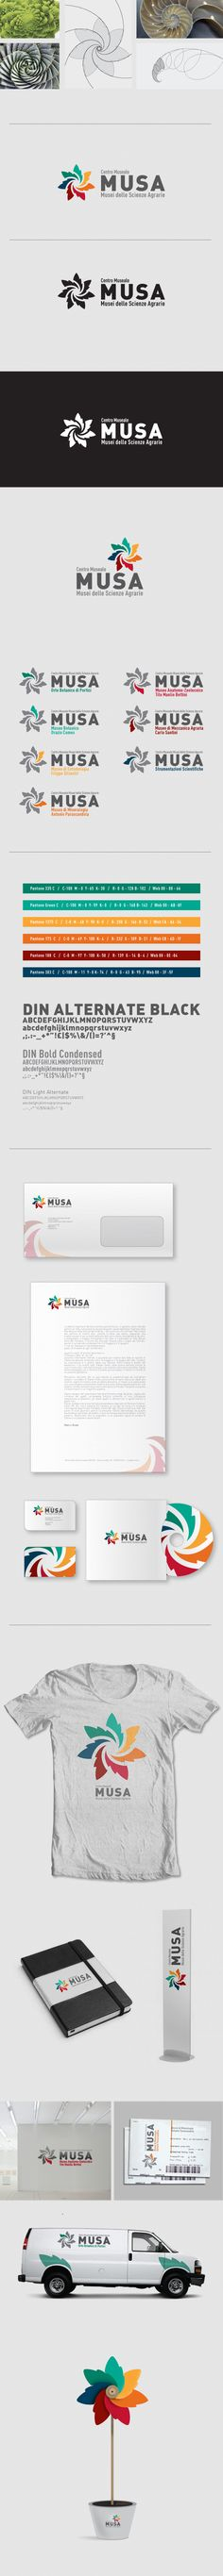 Logo Musa by Matteo Brogi, via Behance